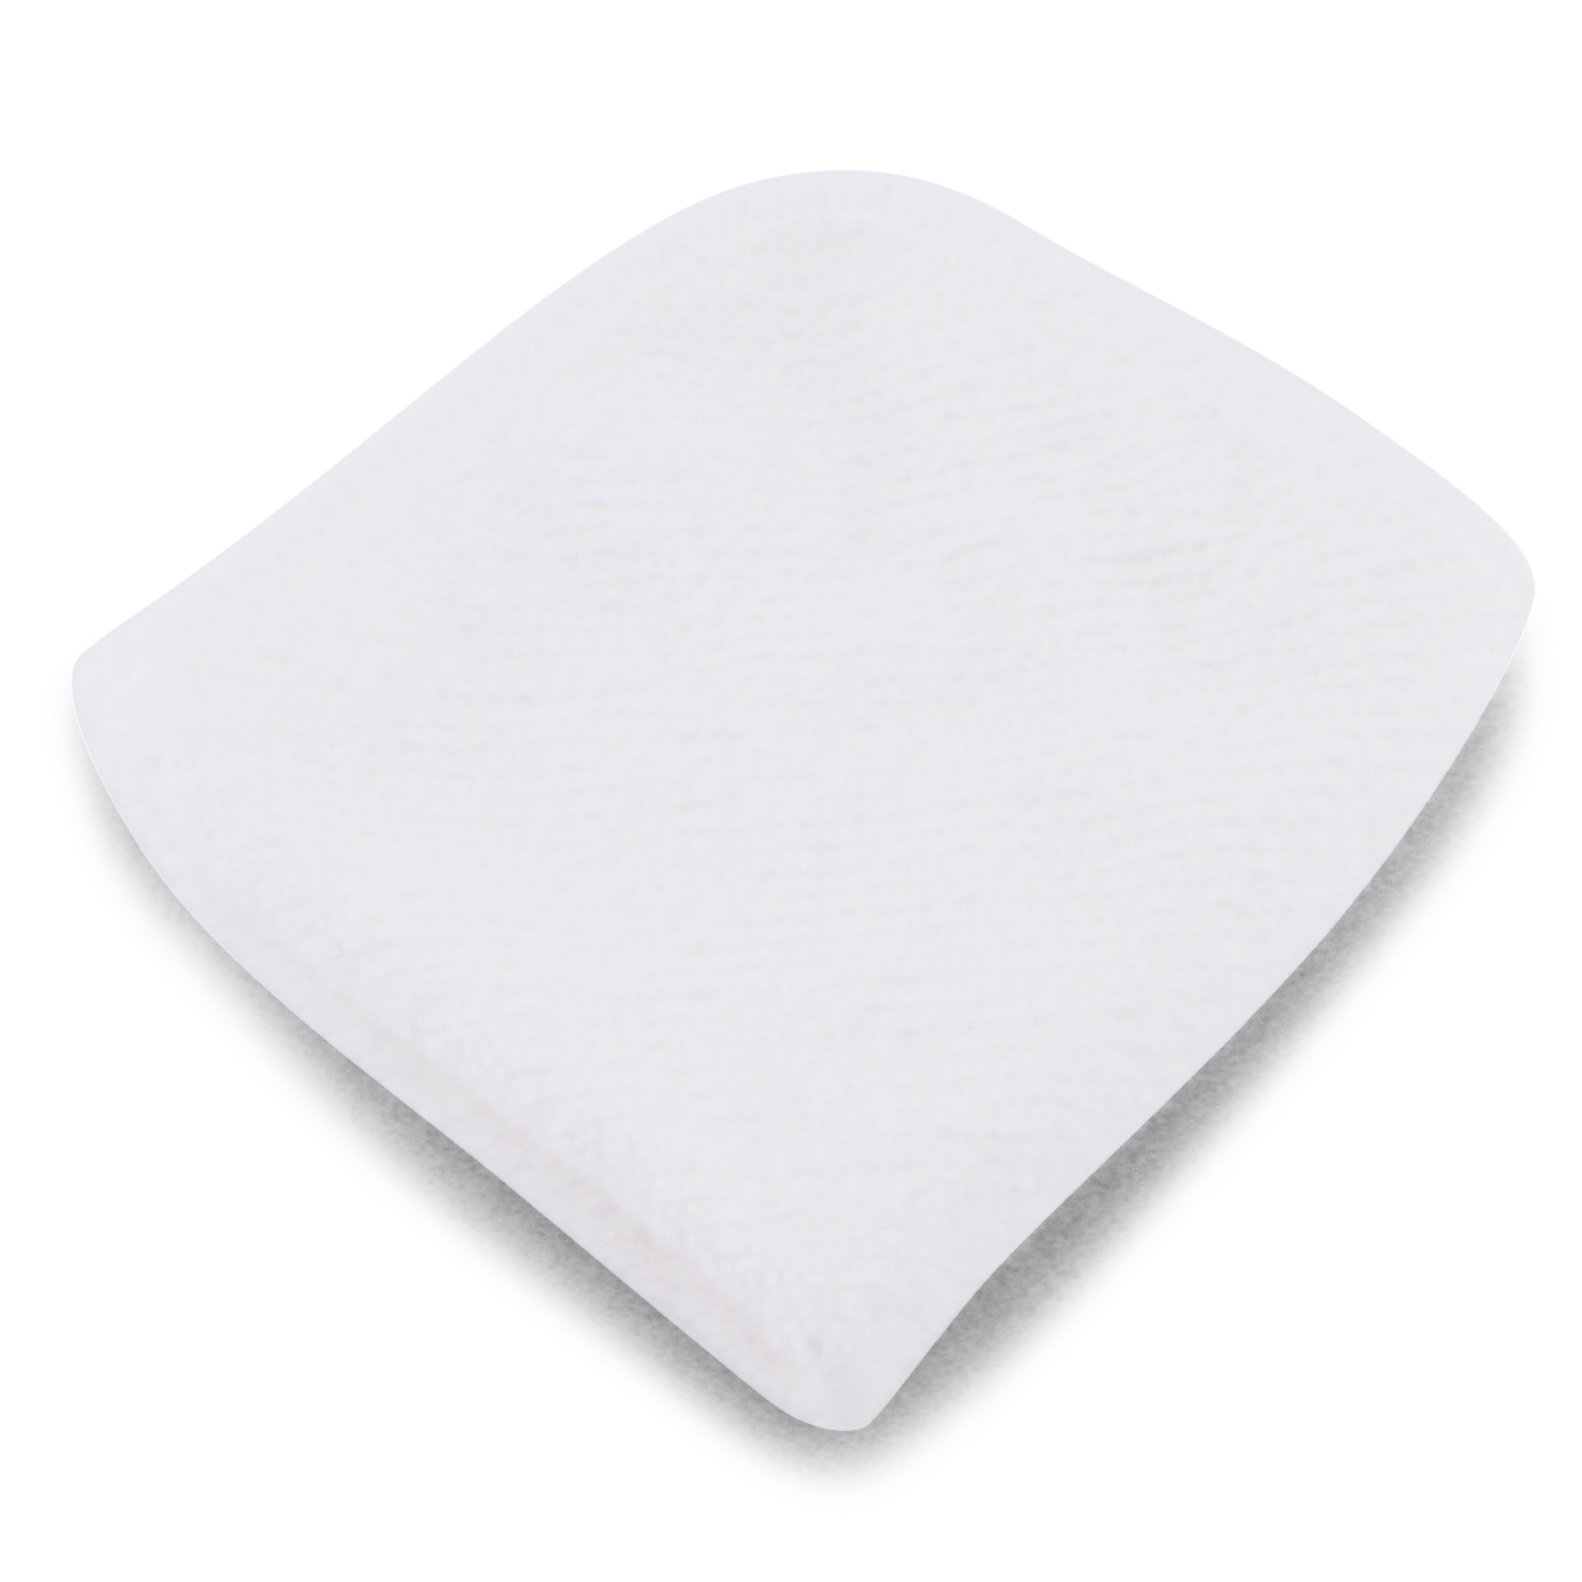 Abyss Twill Bath Sheet (40''x72'') - White (100)